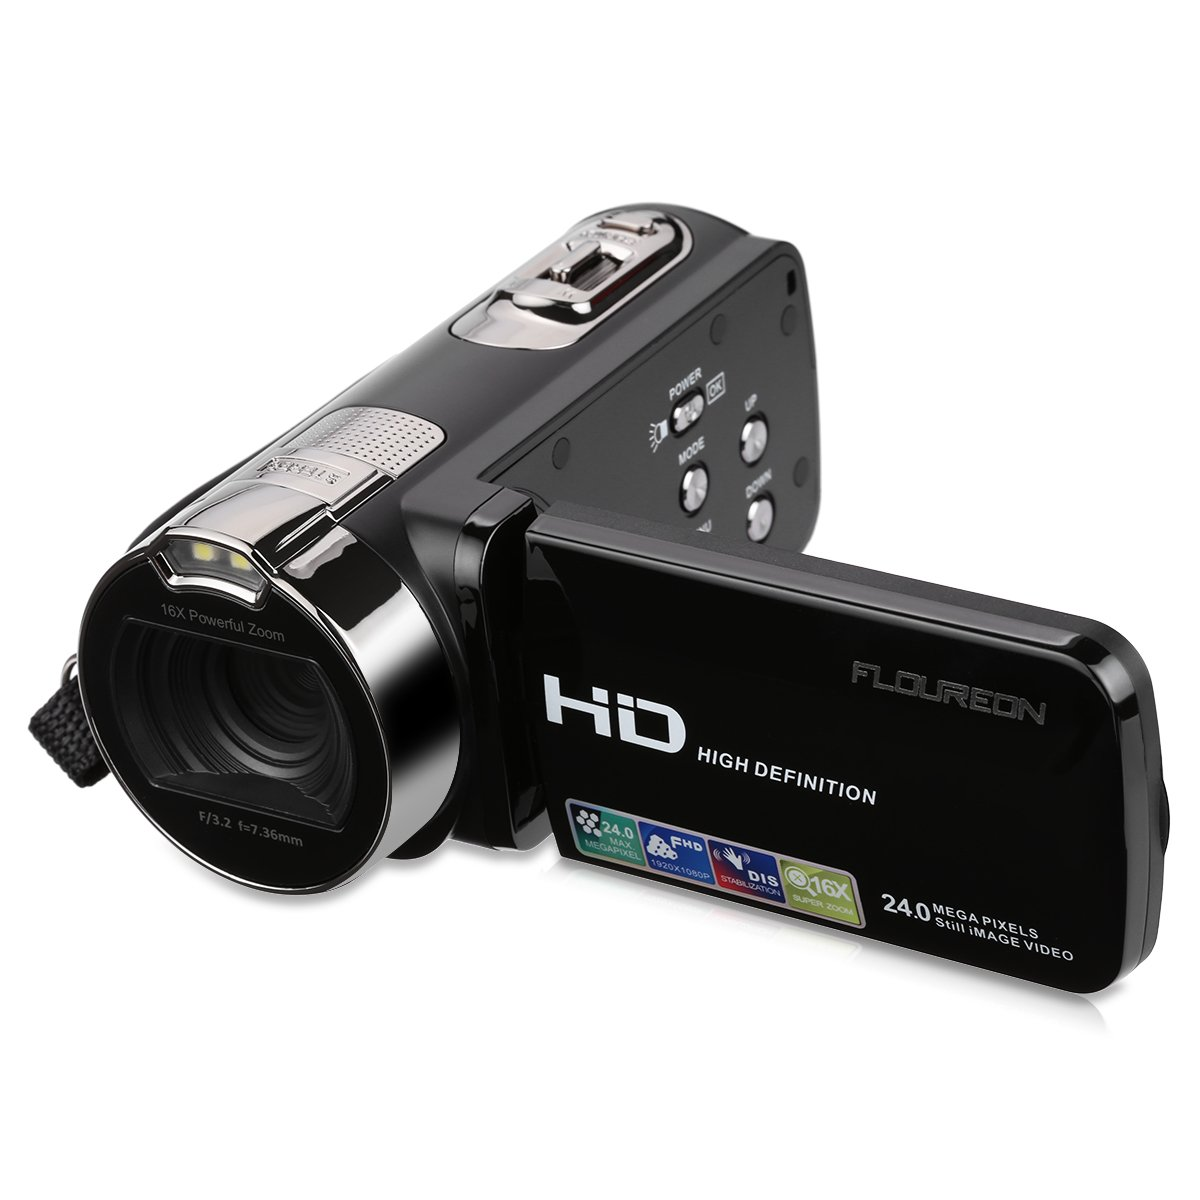 FLOUREON HD 1080P Camcorder Digital Video Camera DV 3.0 TFT LCD Screen 16x Zoom 270 Degrees Rotation for Sport /Youtube/Short Films Video Recording Black